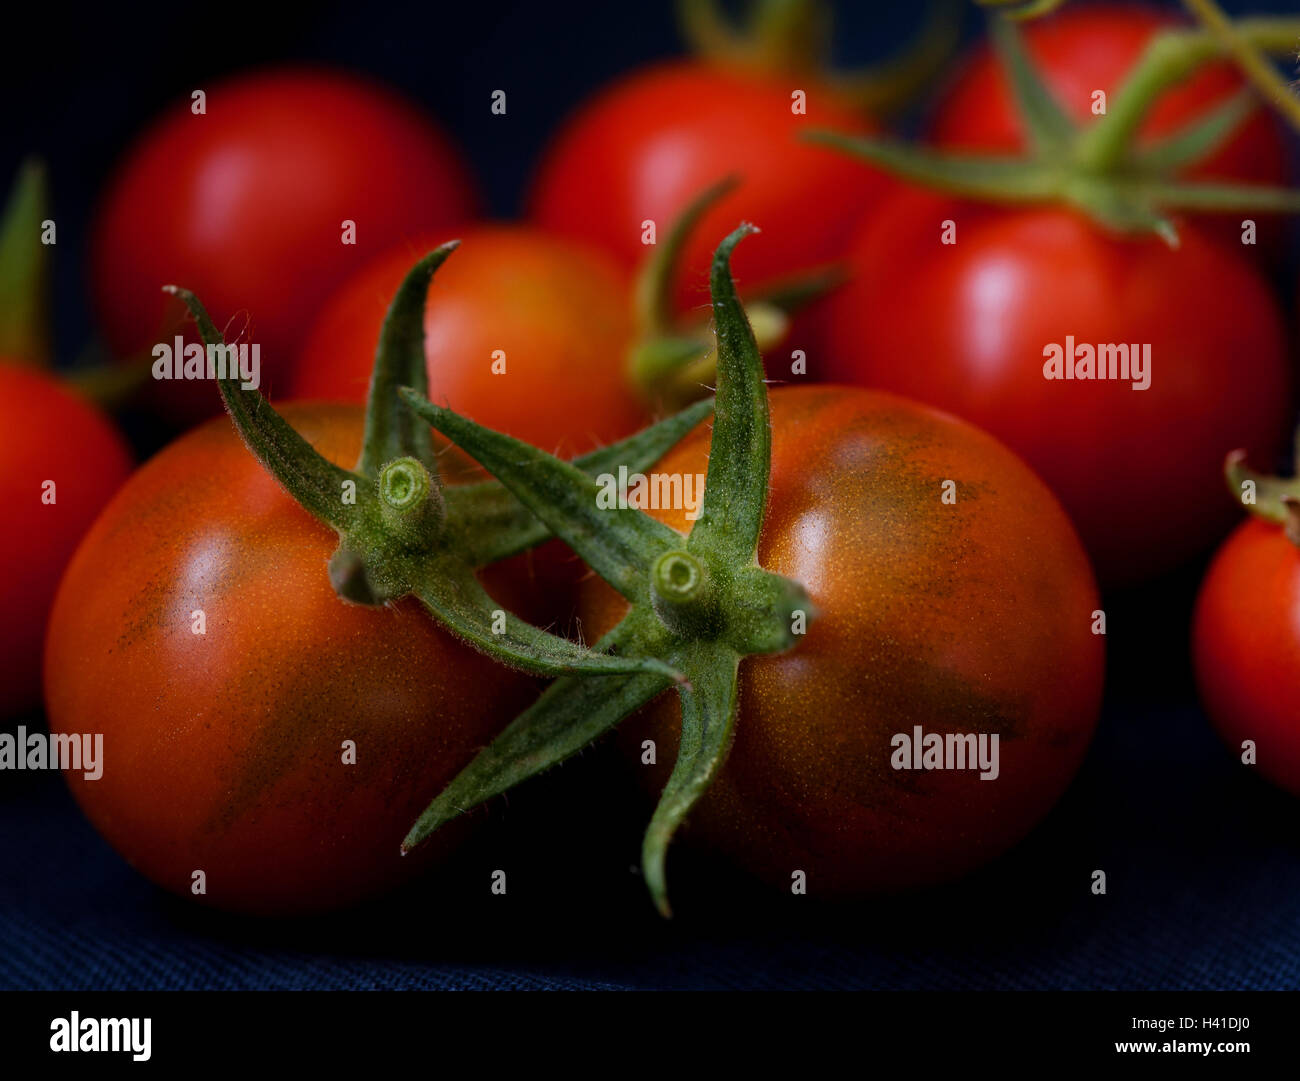 Home grown cherry tomatoes. - Stock Image